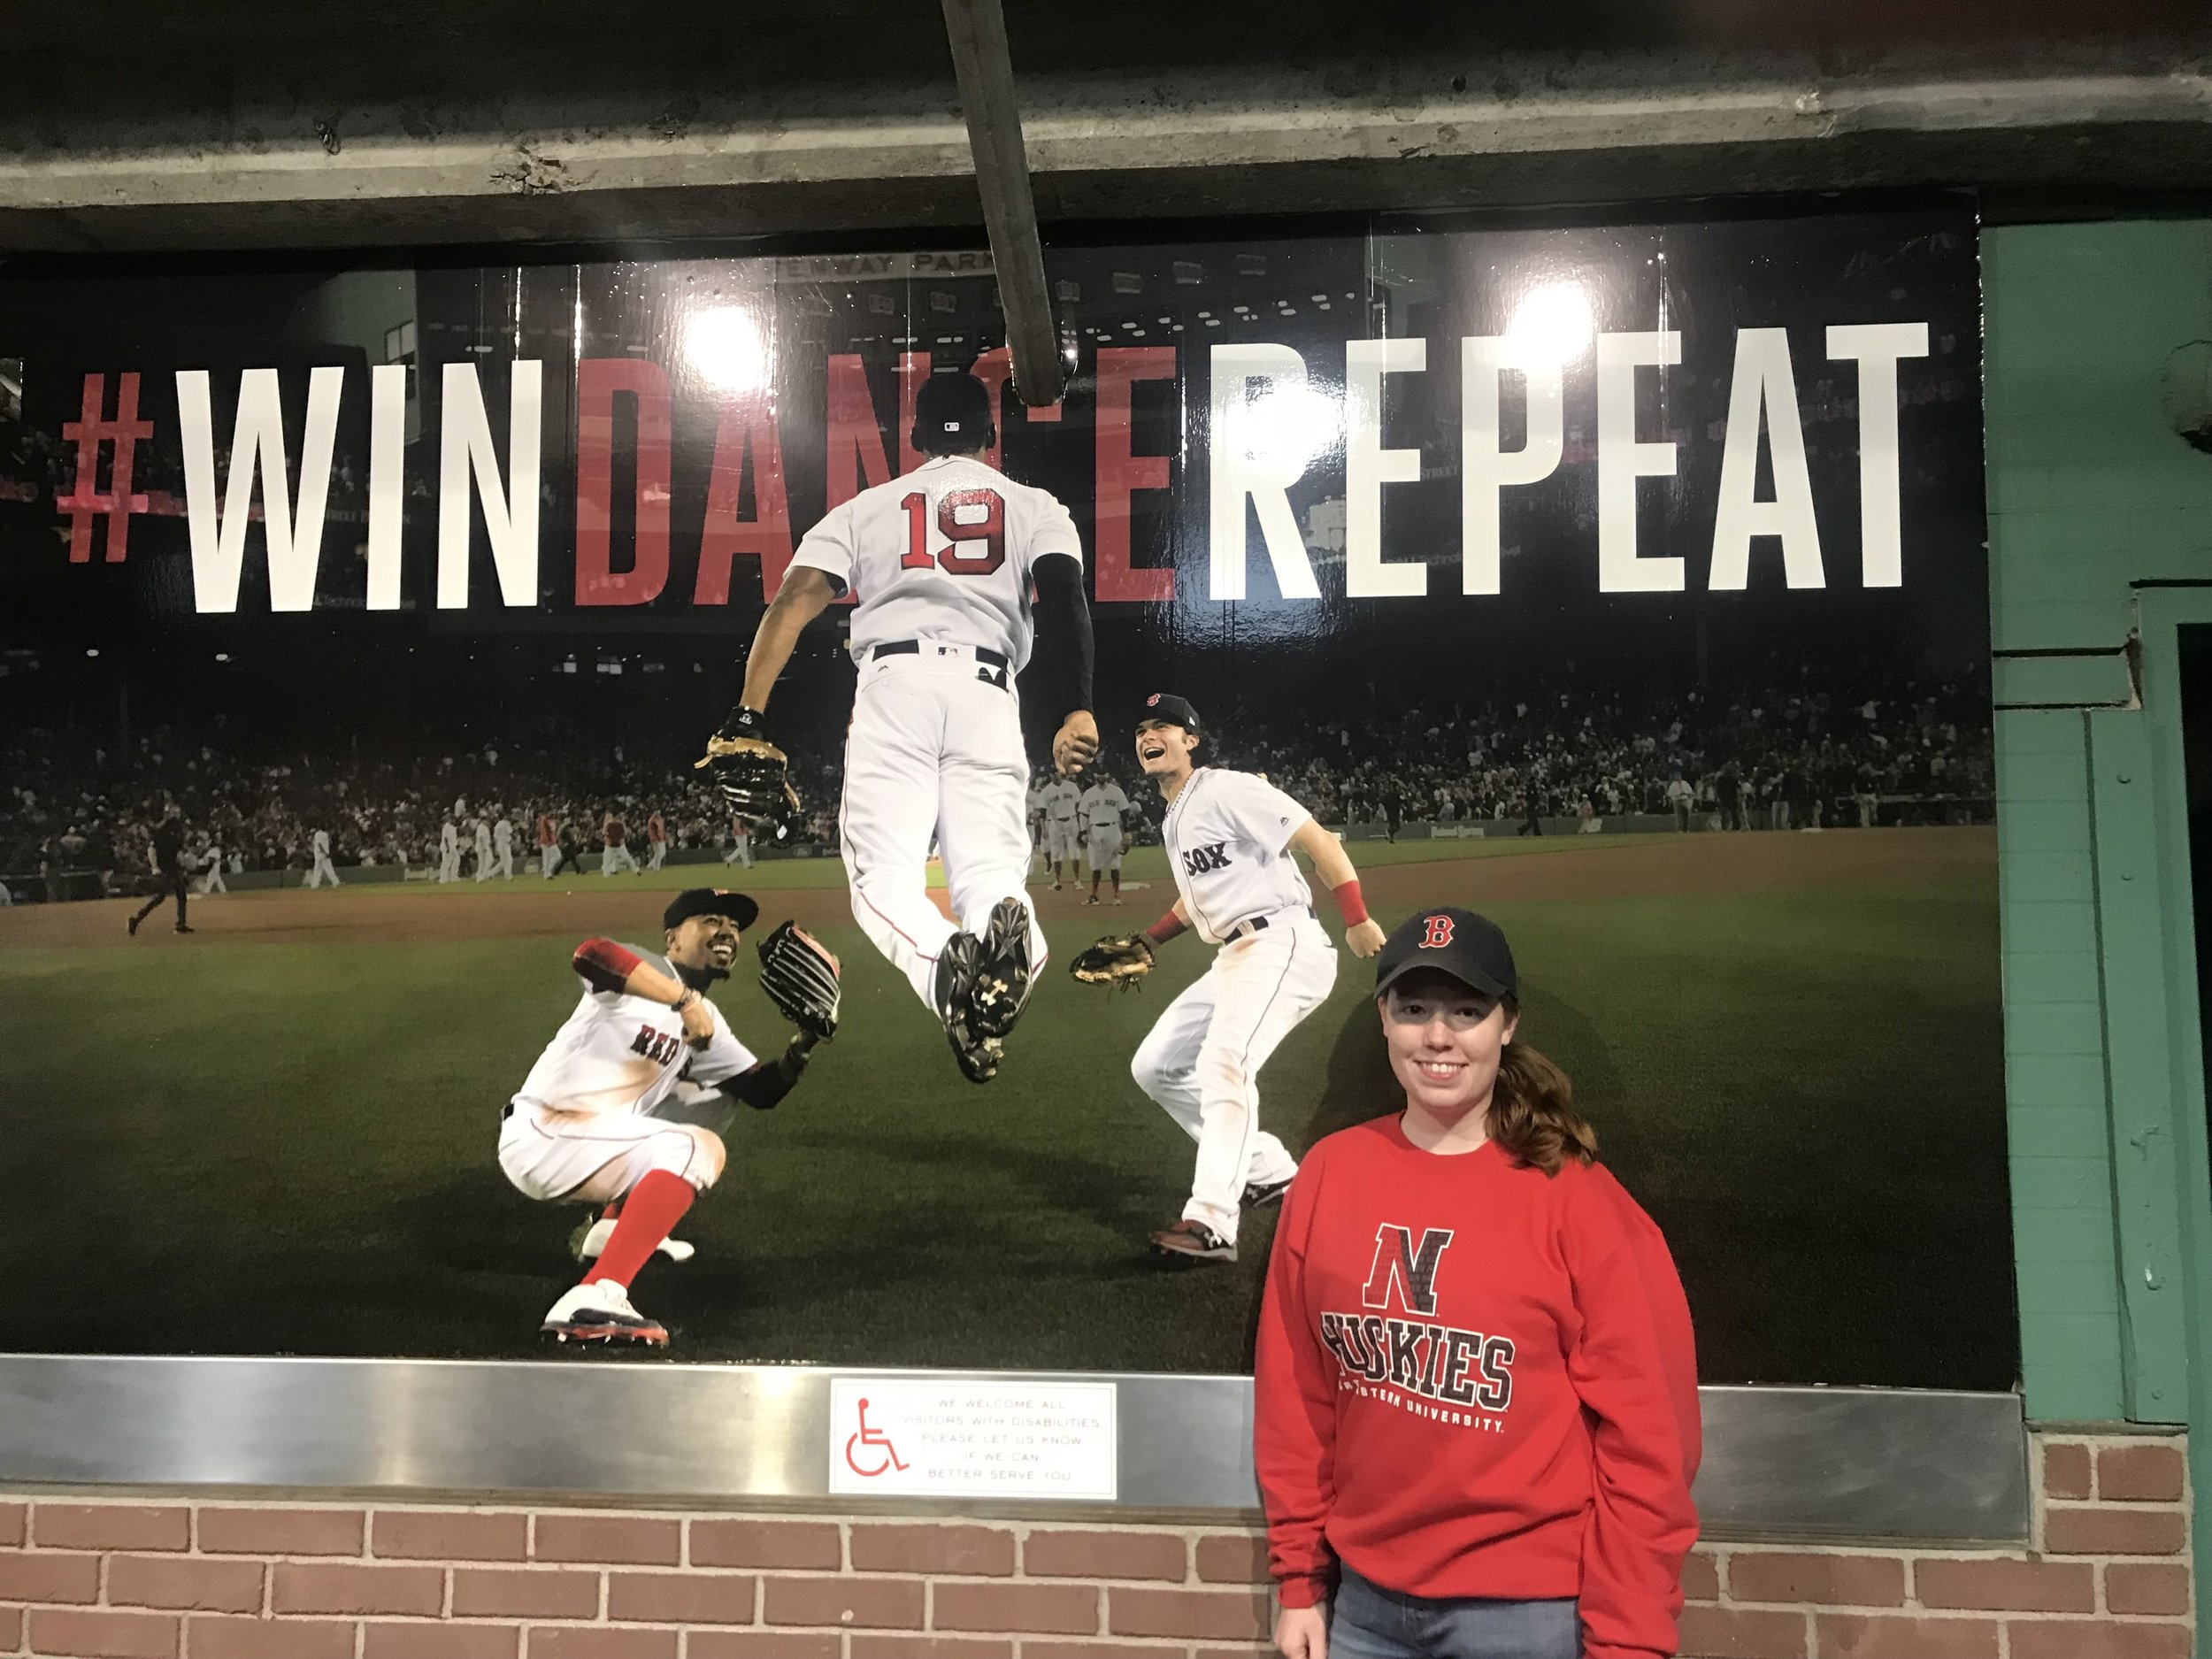 """My name is Ciara Tenney and I go to Northeastern University in Boston, Massachusetts with a major in Criminal Justice and a minor in Arabic Language. In this photo, I am at a Red Sox baseball game in September 2017 on the day the Red Sox clinched the American League East Division. This game was special to me because I attended it with my father who came down to visit me in Boston just for the game and I got to see my beloved Red Sox celebrate their victory. While I go to school in Boston, I grab """"Student 9's"""" tickets as often as possible to go to games at Fenway Park for only $9. Photo credit: Tenney, 2017."""